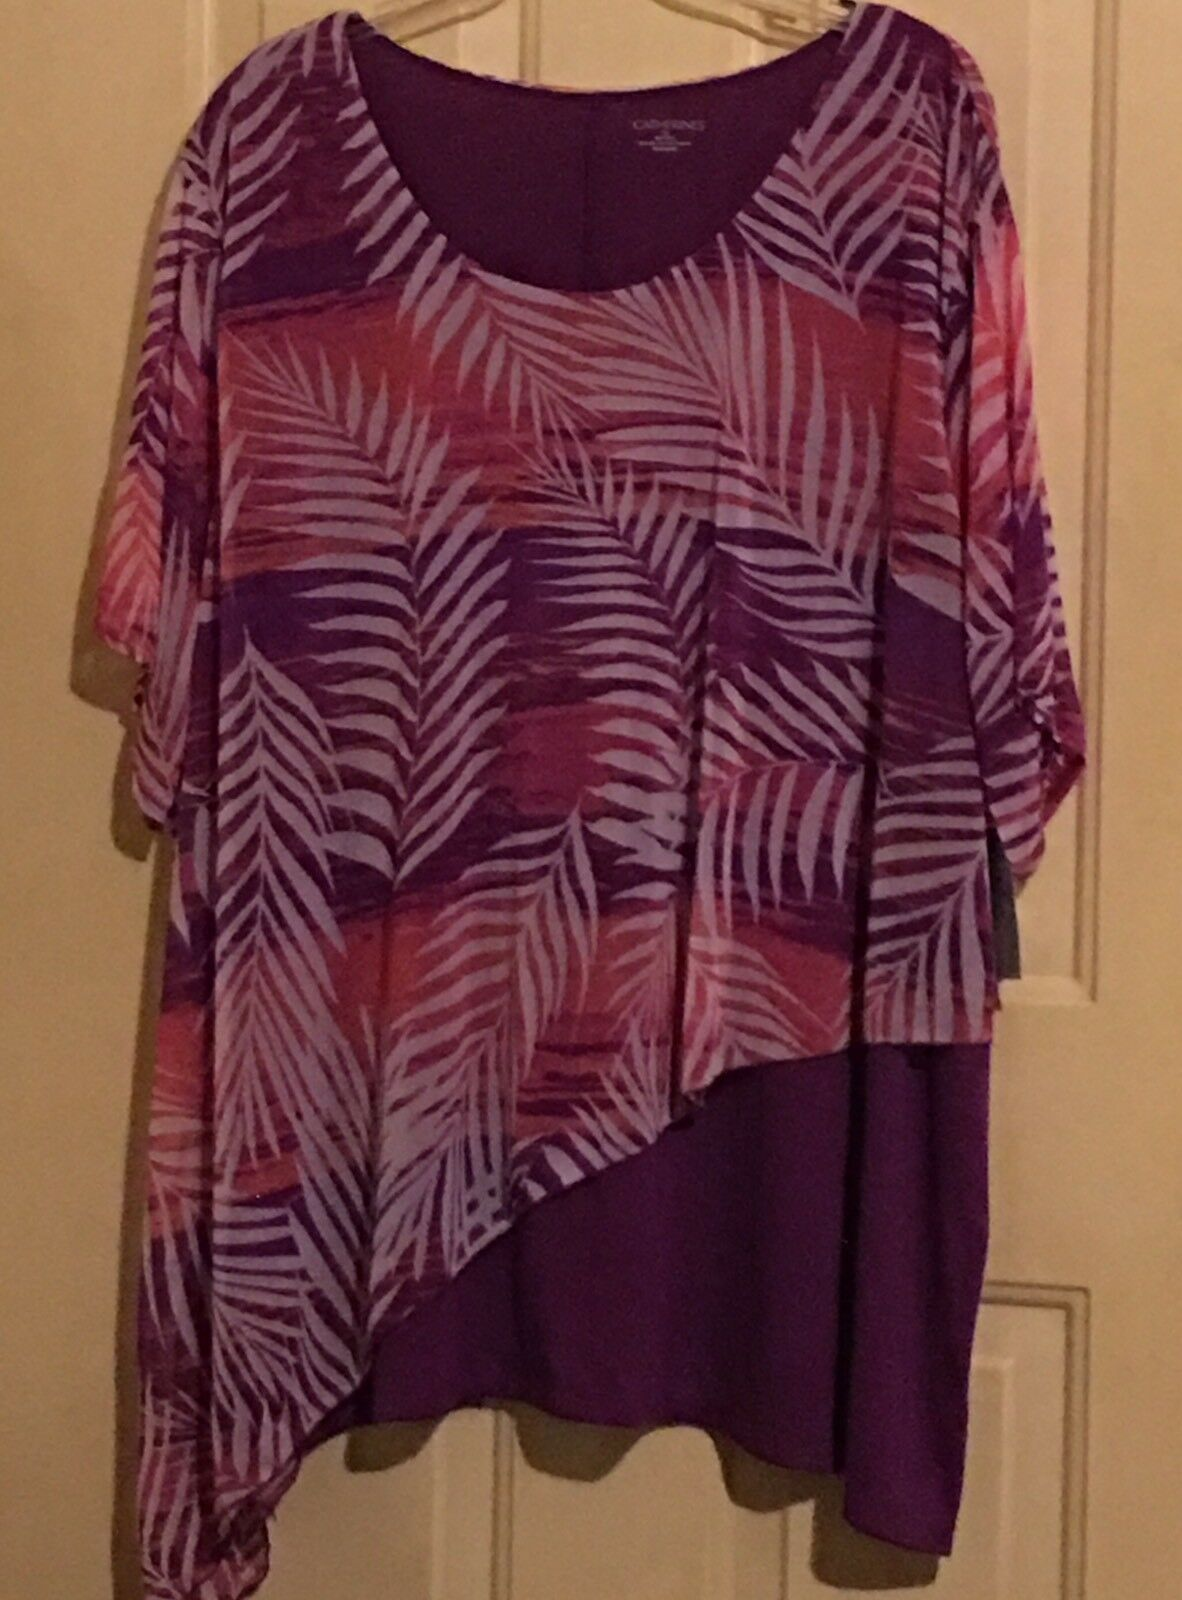 damen CATHERINES 5X TOP SHIRT MULTIFarbe NWT lilaS Rosa FLORAL LEAVES 34 36W